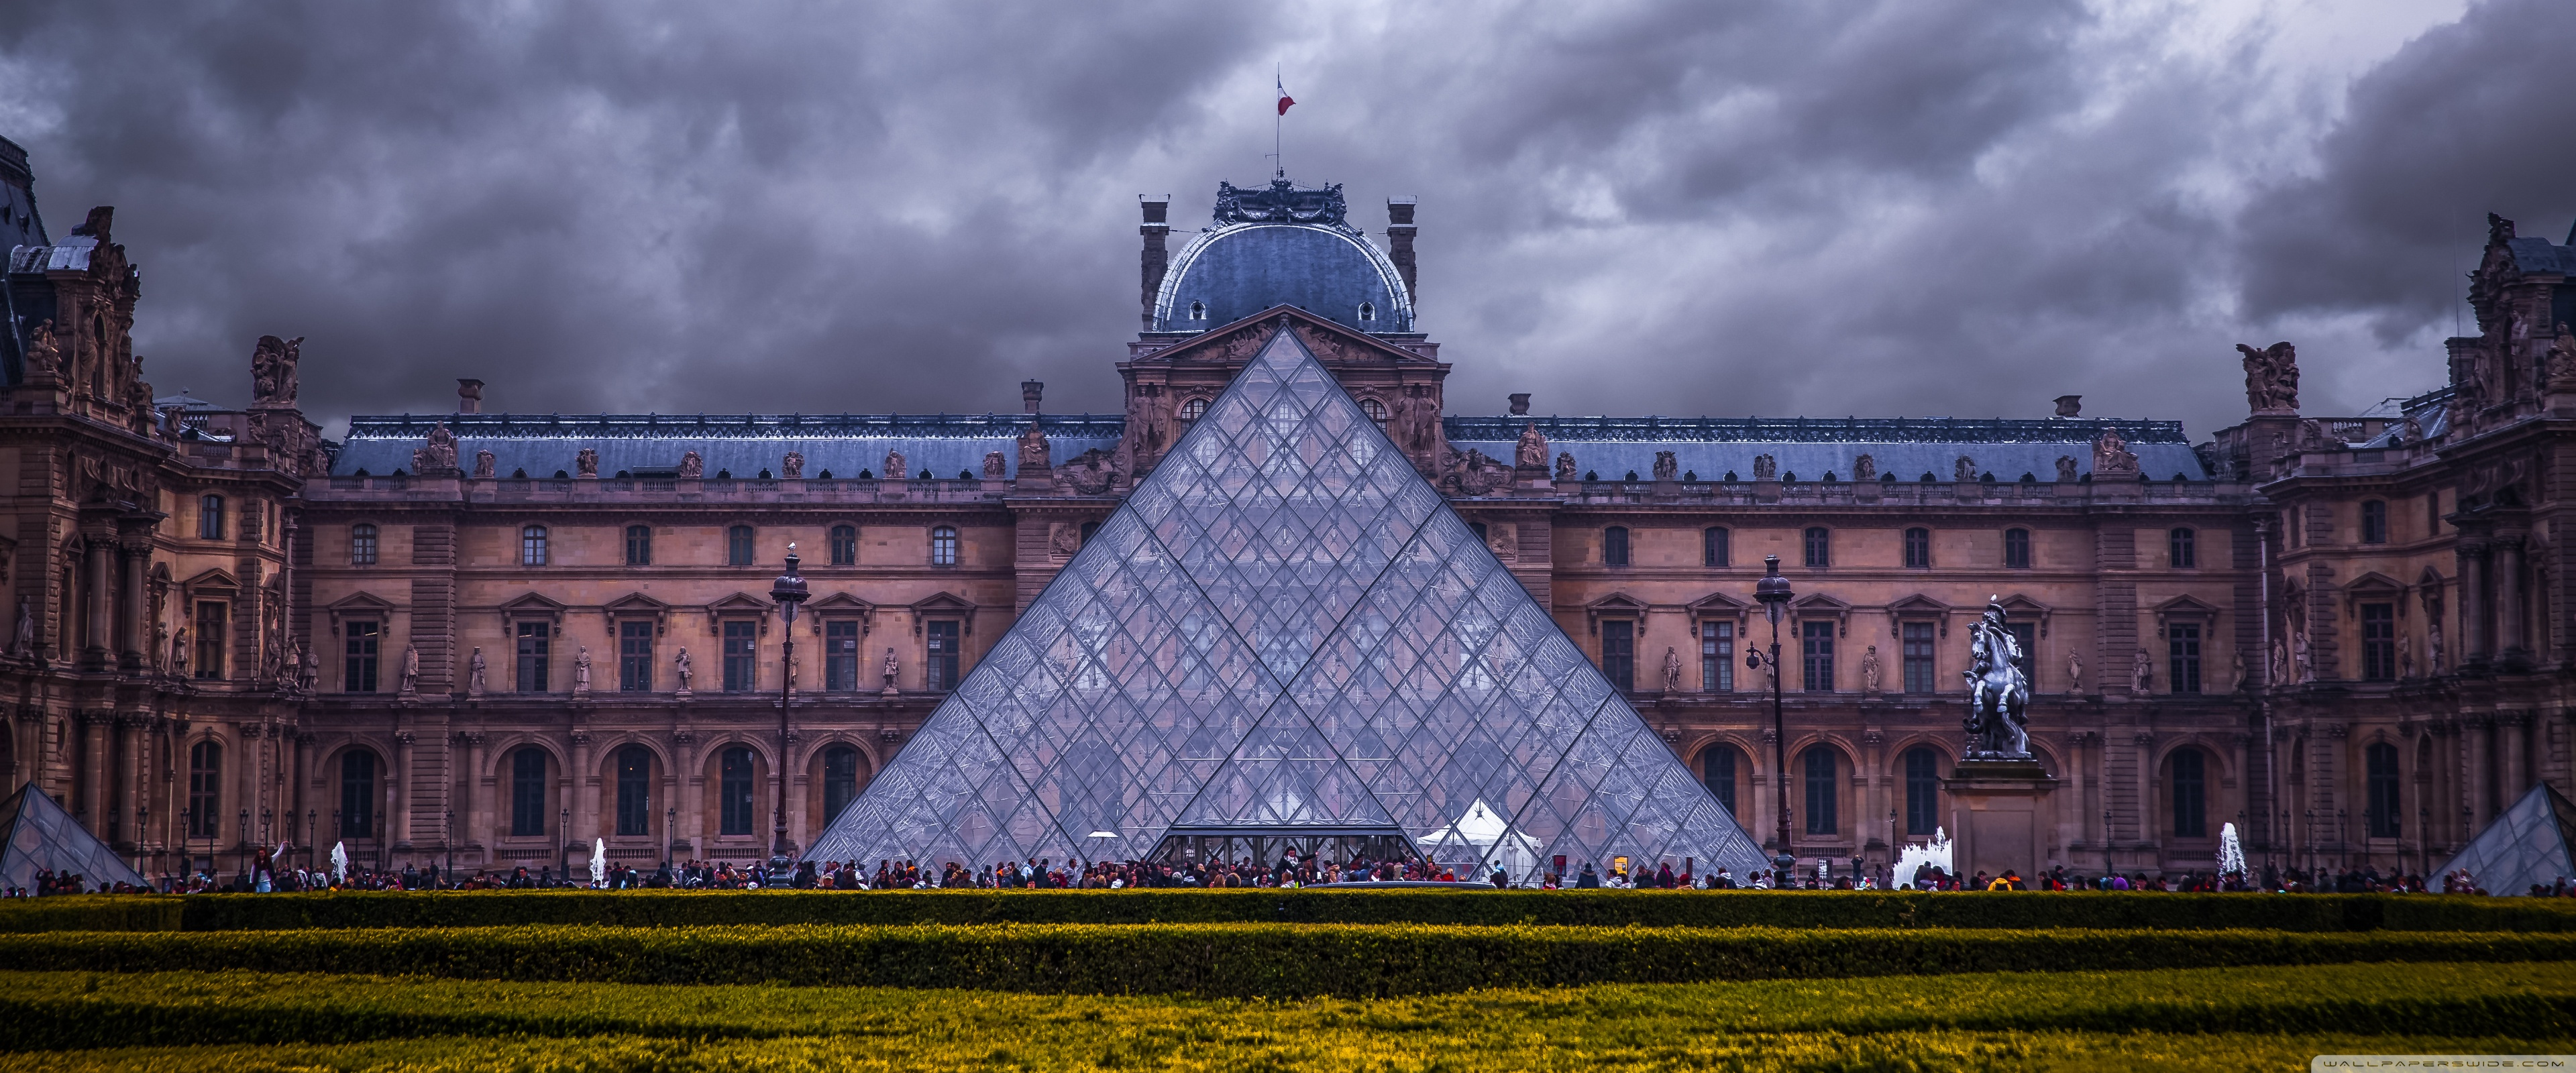 Louvre Museum Paris France 4K HD Desktop Wallpaper for 4K 3840x1600